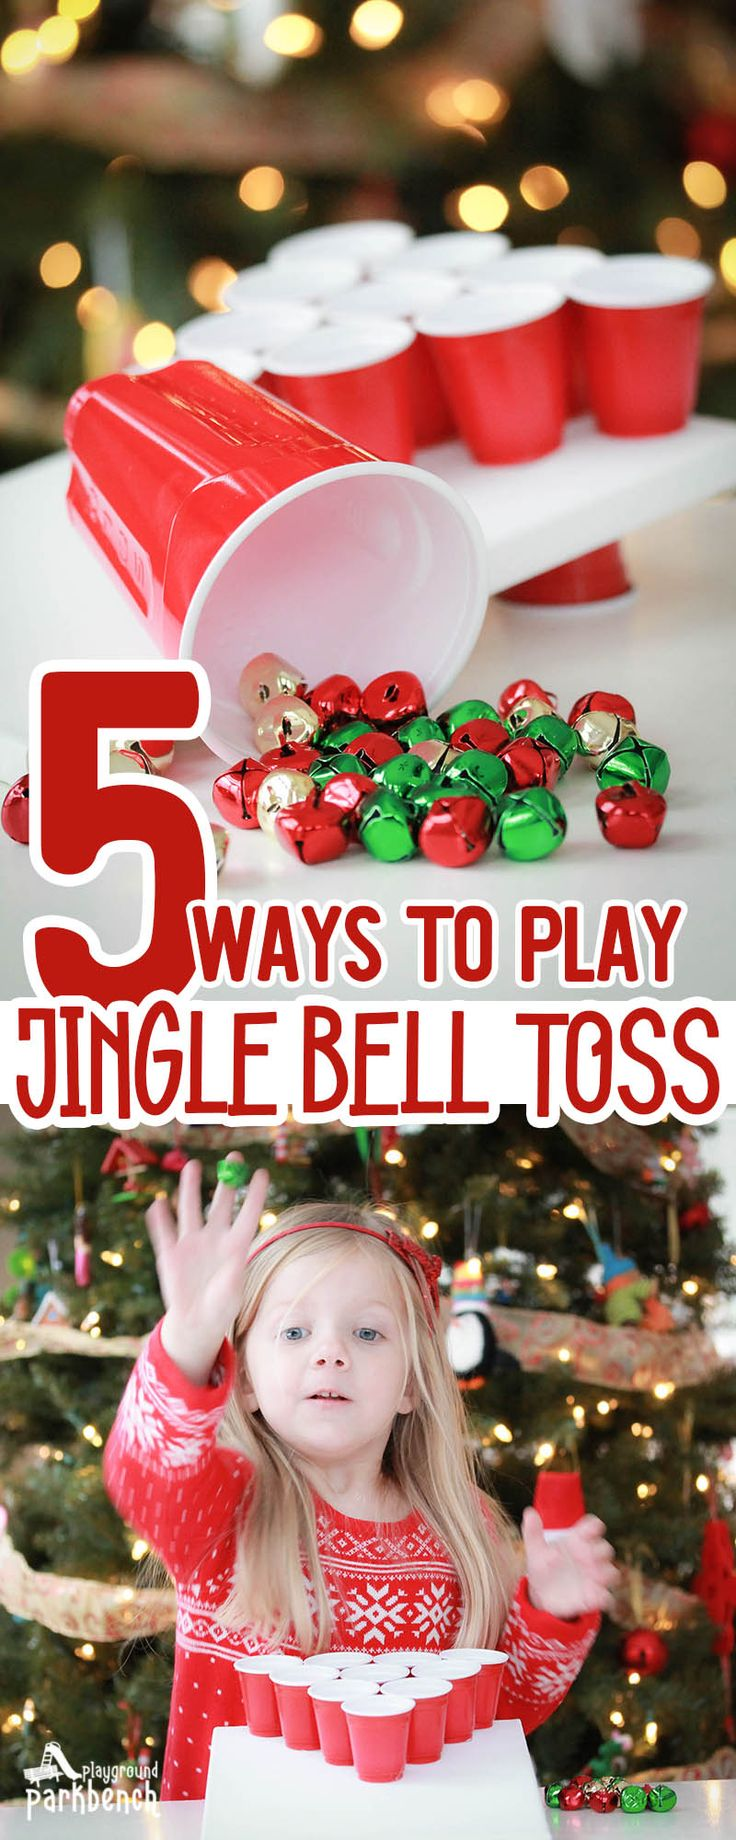 This simple holiday party game is a hit for kids and adults alike - all you need to play jingle bell toss is bells, red cups and some enthusiasm for fun!